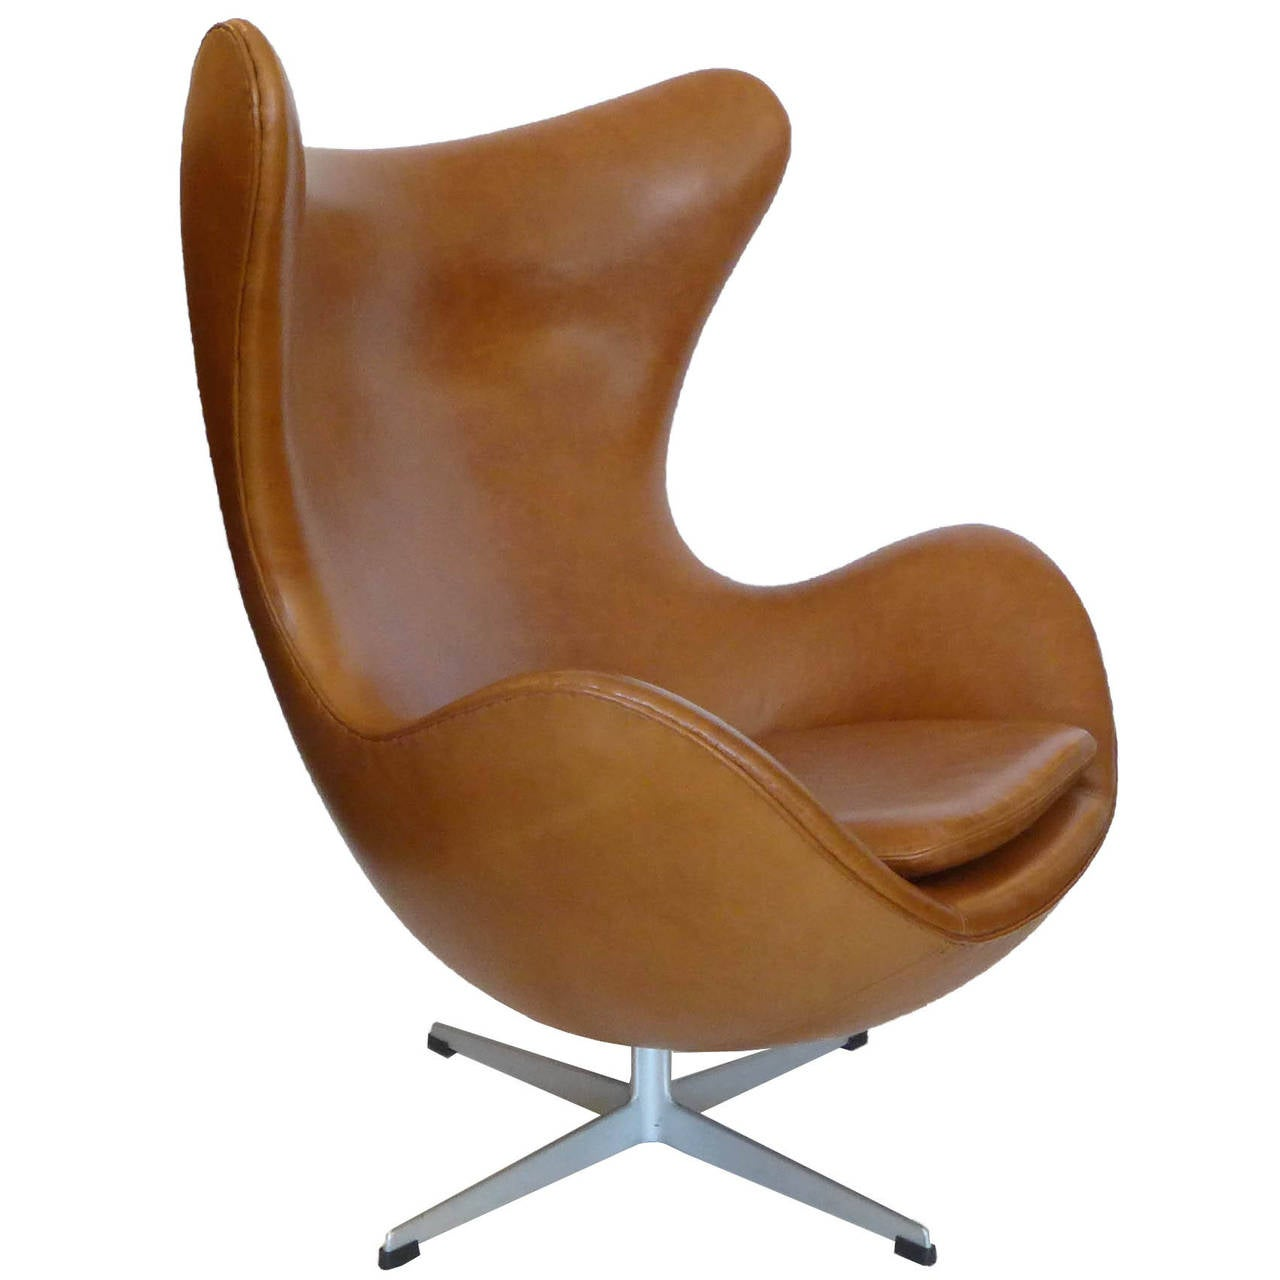 Original Carmel Tan Egg Chair And Ottoman By Arne Jacobsen